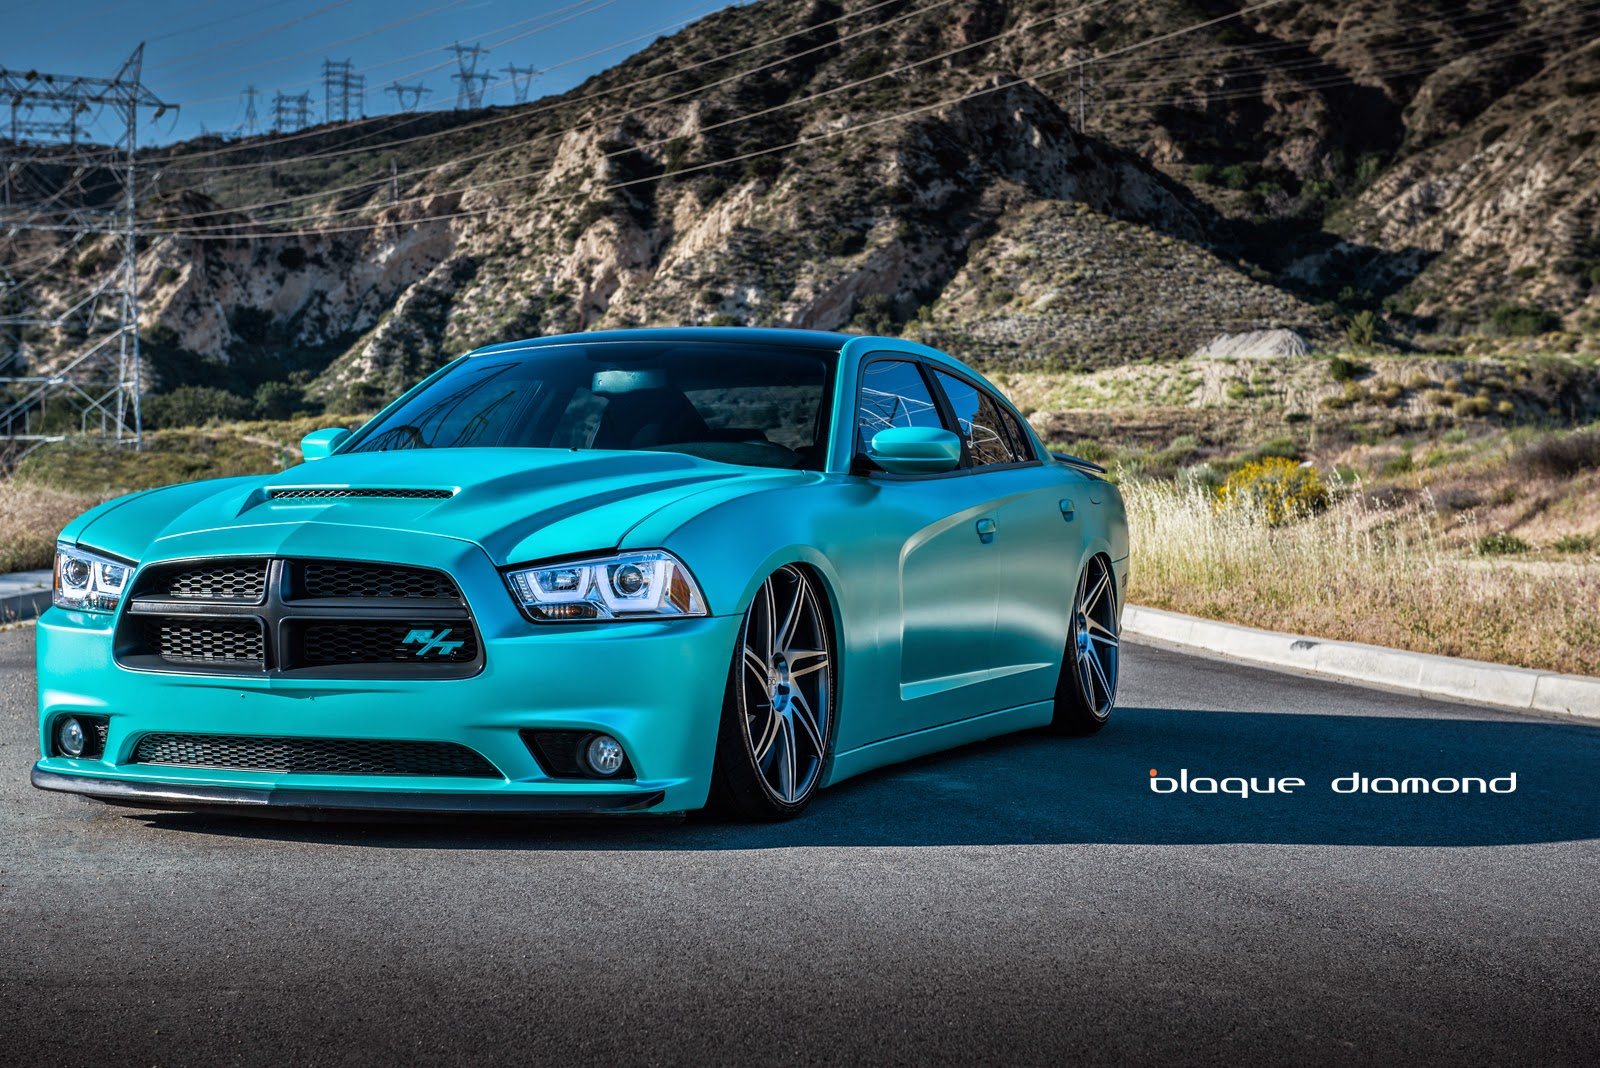 2013 Dodge Charger Daytona With 22 Inch Bd 1 S In Matte